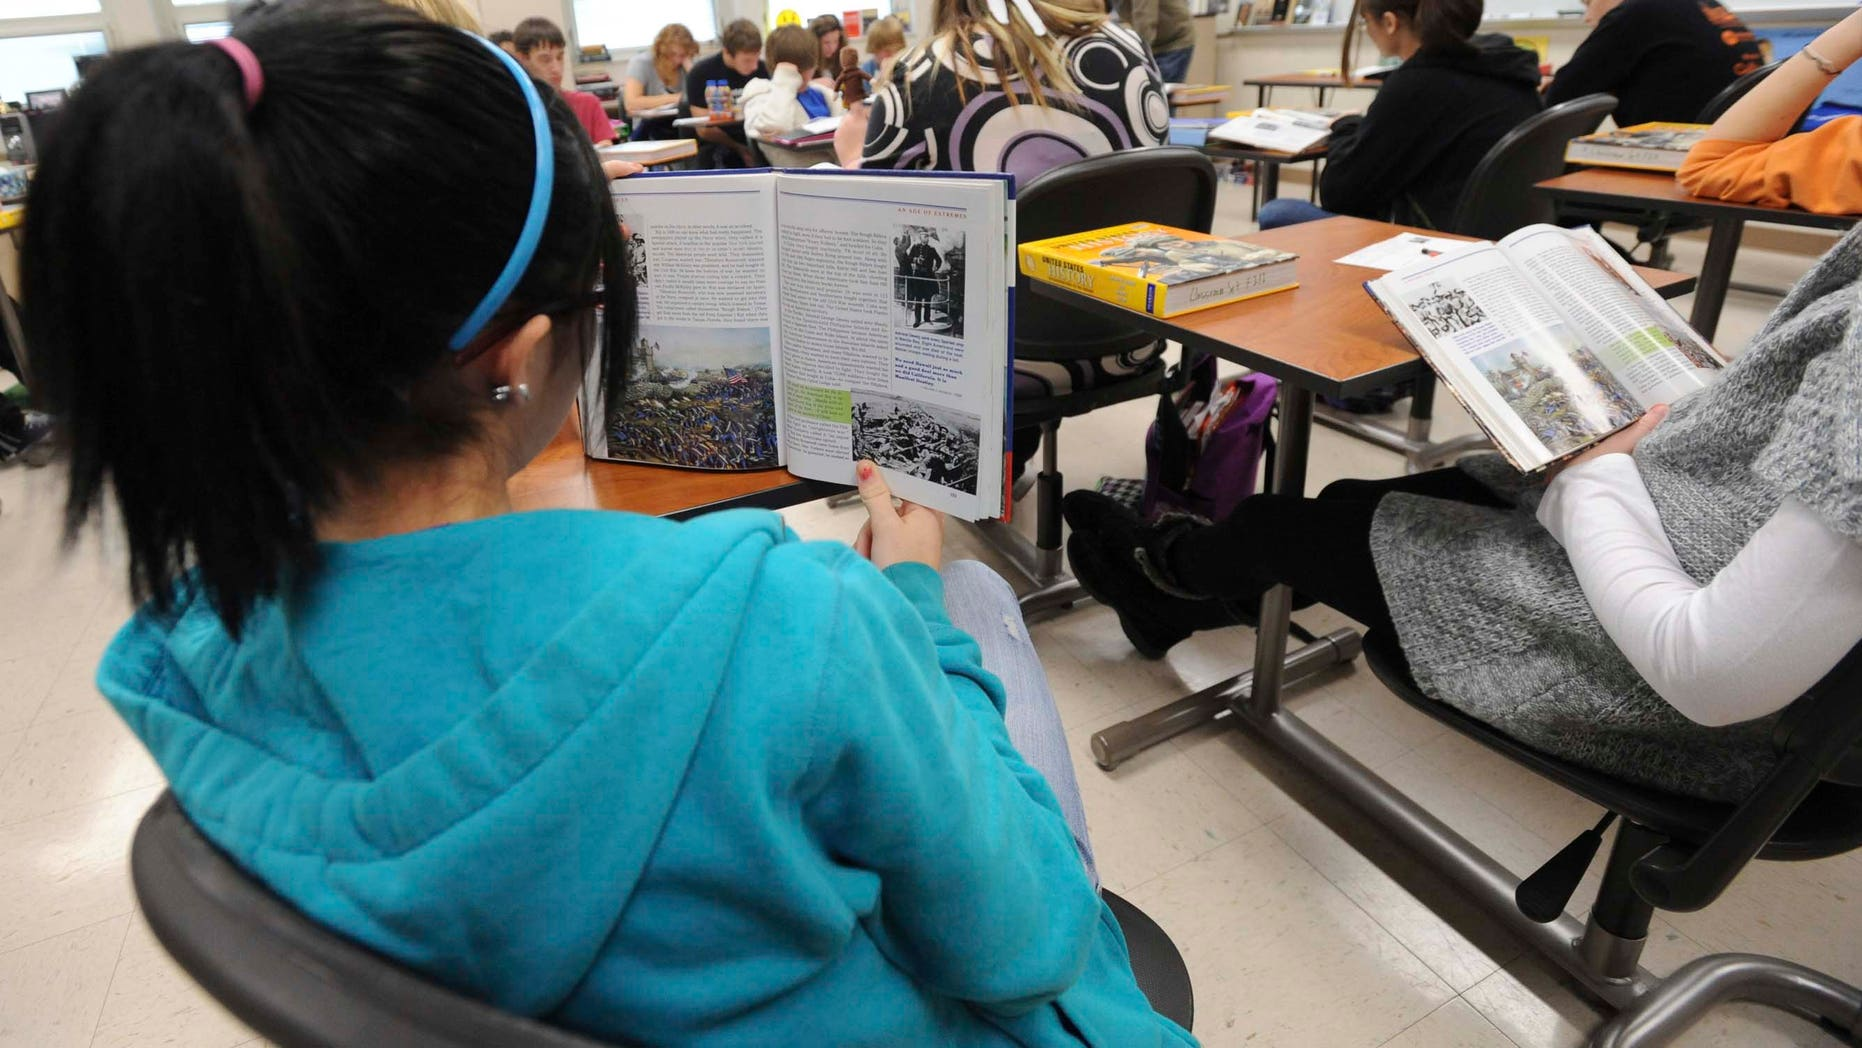 ** FOR USE MONDAY, Dec. 13 AND THEREAFTER** In this photo taken on Dec. 3, 2010, sophomore Ariel Russell follows along in her book as another student reads out loud in the John Jackson's U.S. history class at the Franklin High School in Franklin, Ind. School officials hope to give even more students a chance to earn college credits by making more dual-credit courses available. The goal is to get students who are planning to attend college a head start, as well as to give students the confidence that they can succeed in college level courses. (AP Photo/Daily Journal, Scott Roberson)